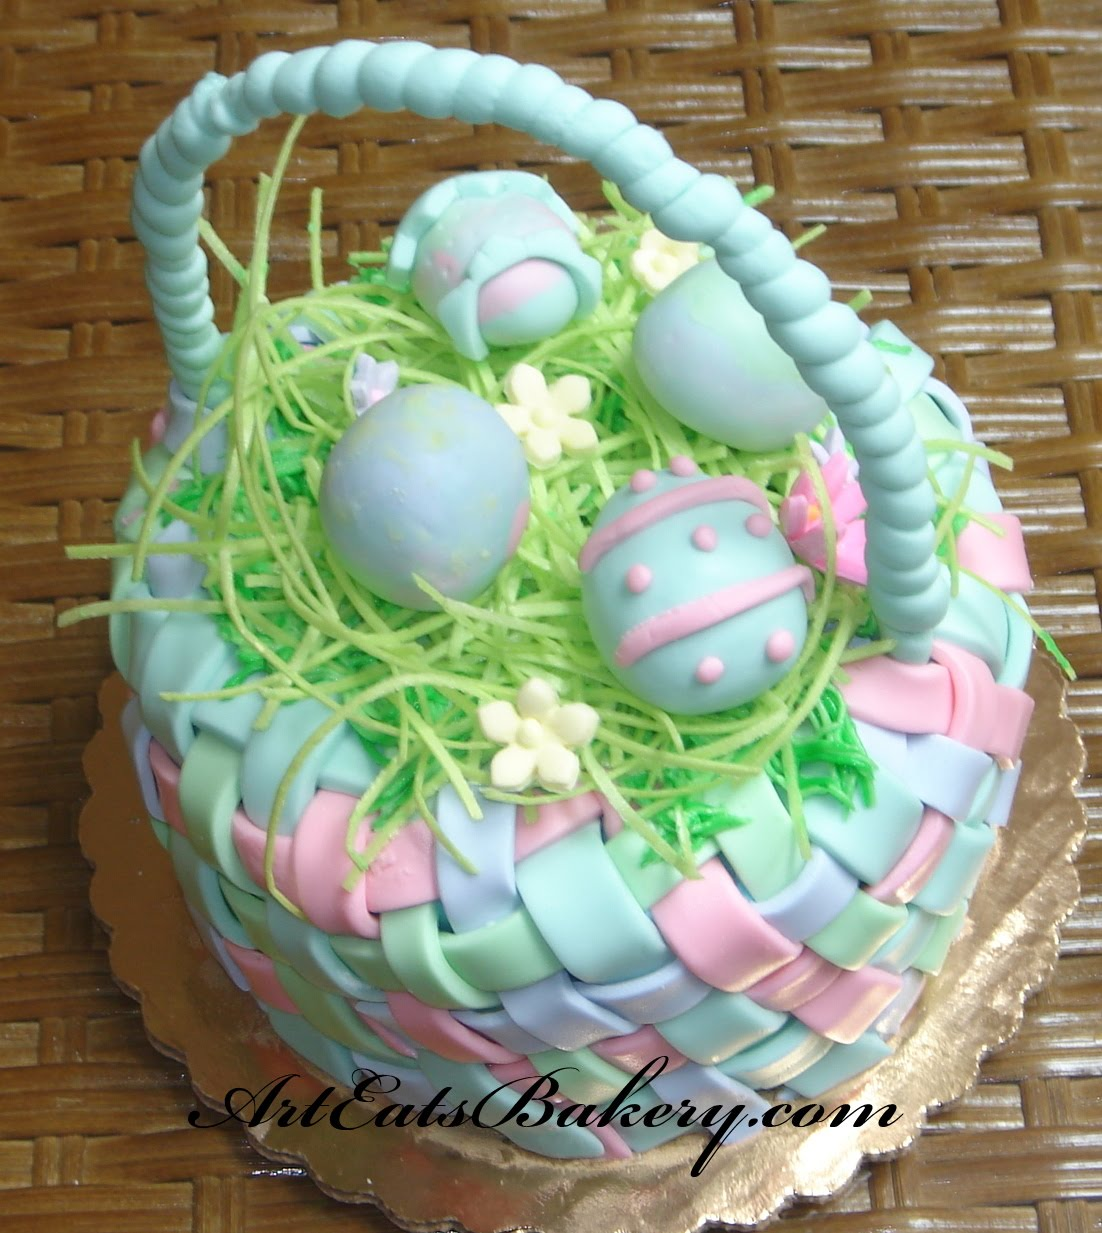 Easter Basket Cake Decorating Ideas : Art Eats Bakery custom fondant wedding and birthday cake ...